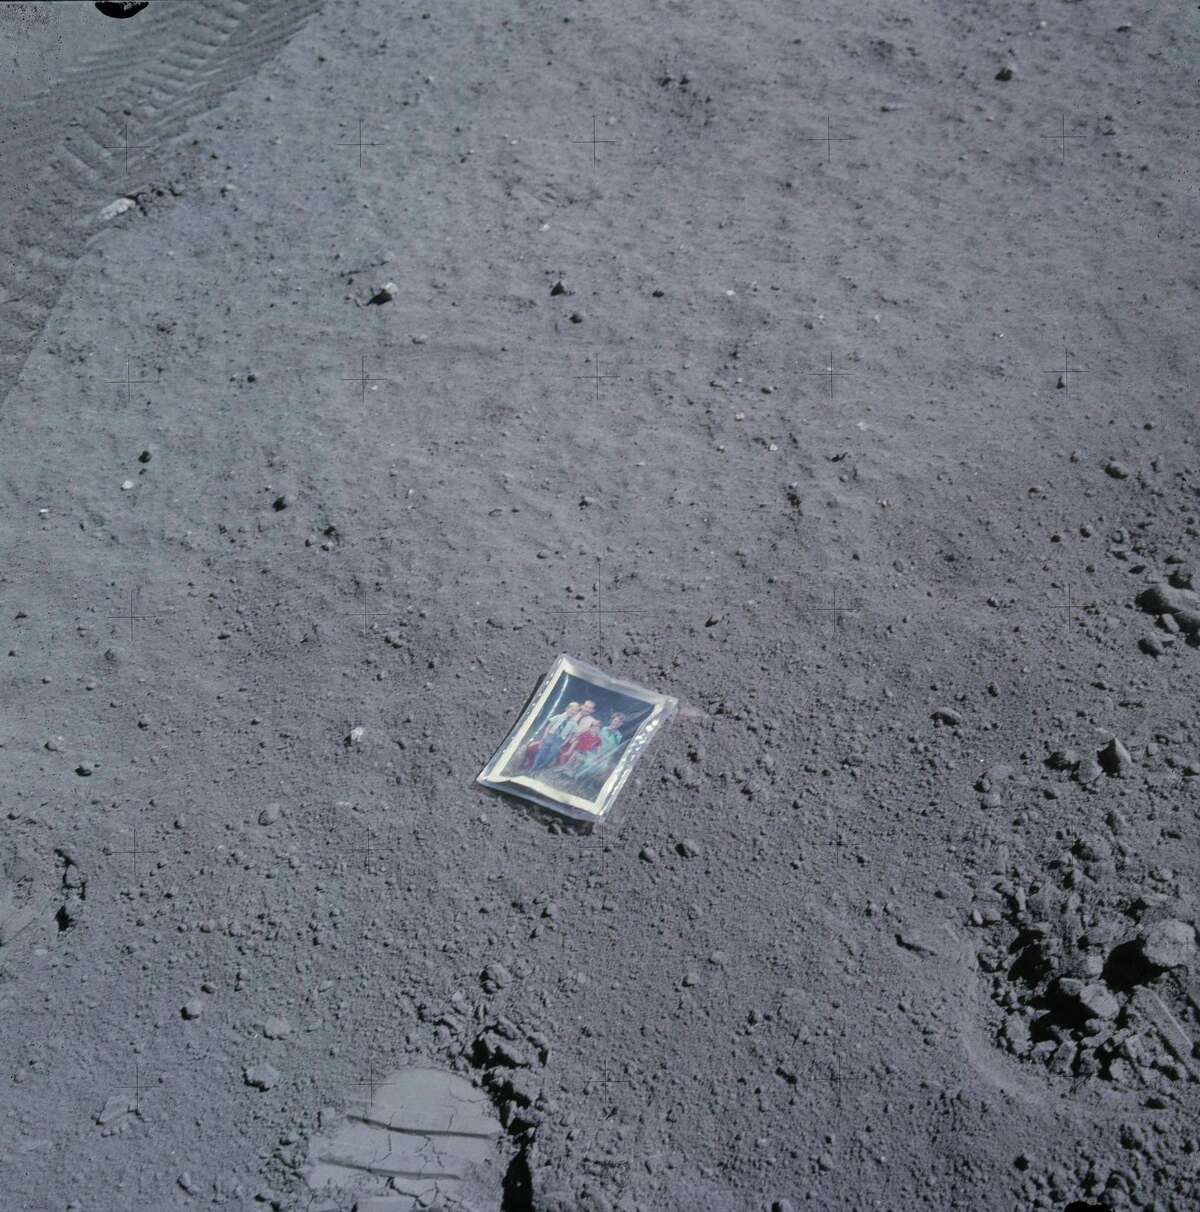 As lunar module pilot during the Apollo 16 mission in 1972, Charles Duke left a plastic encased photo of him and his family -- wife Dorothy and sons Charles III, 7 at the time, and Thomas, 5 -- on the moon's surface.